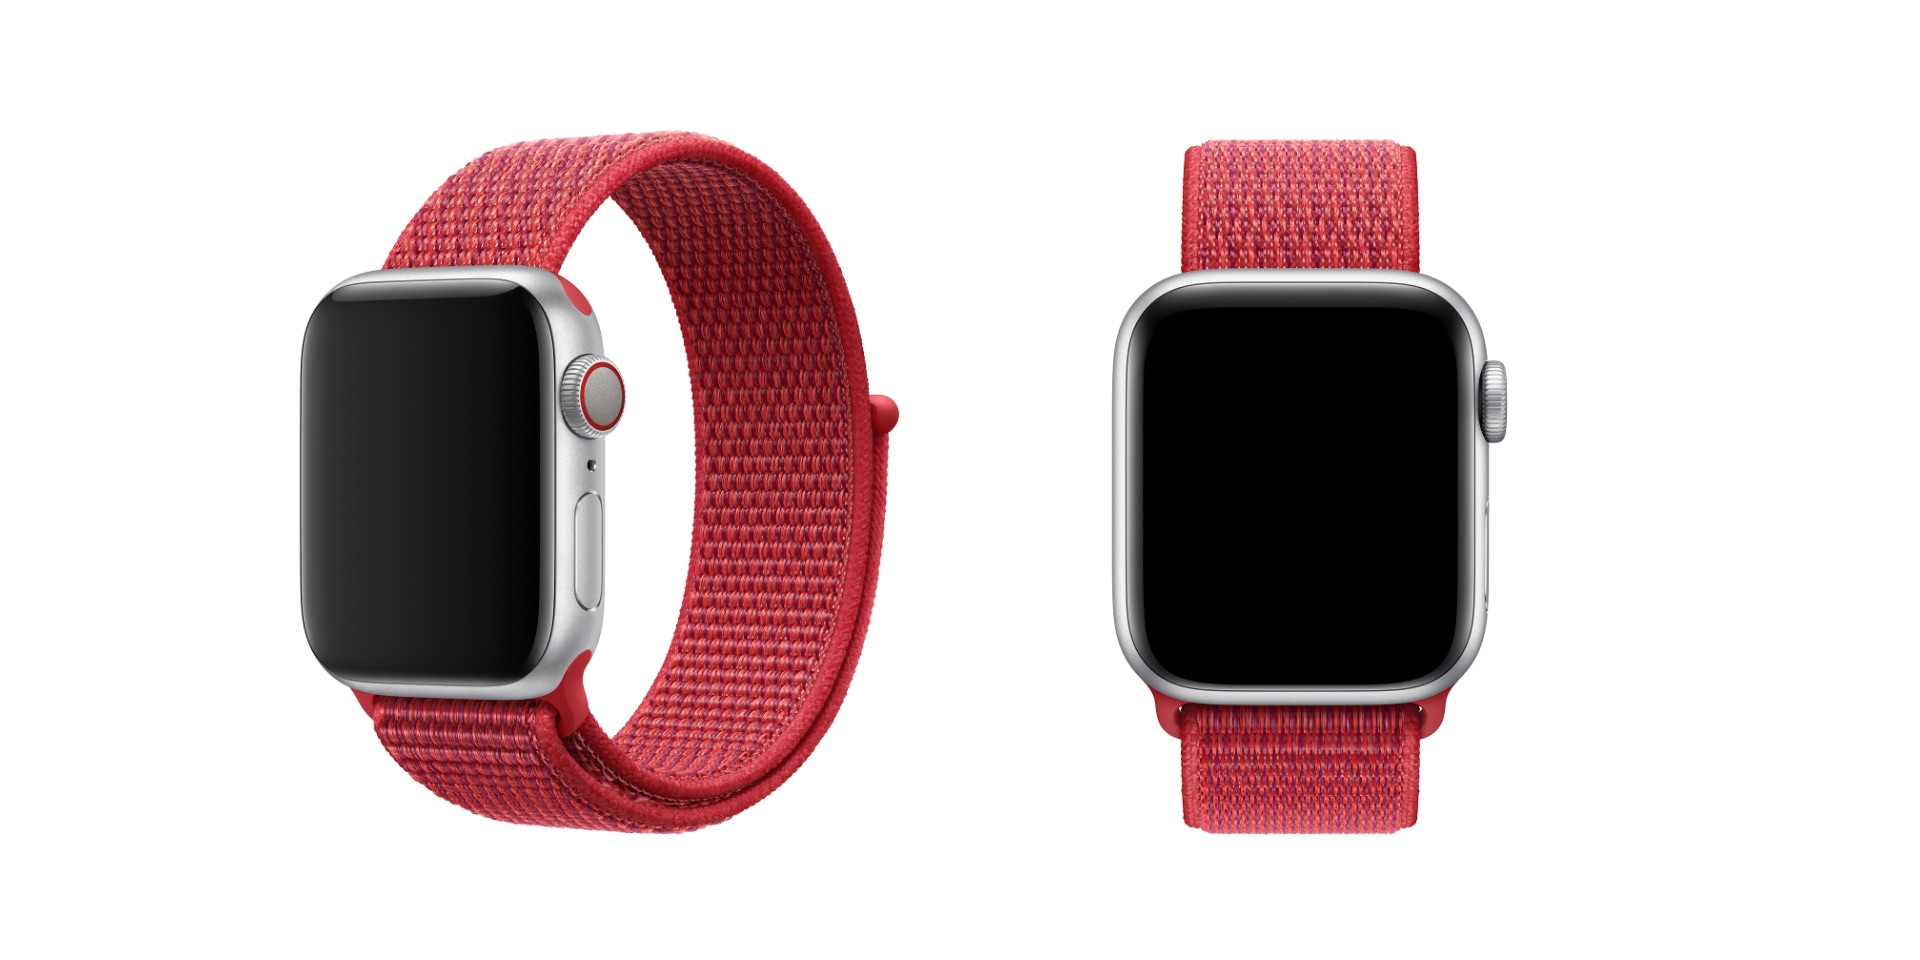 (PRODUCT)RED Sport Loop for Apple Watch debuts alongside recently introduced Hermès straps